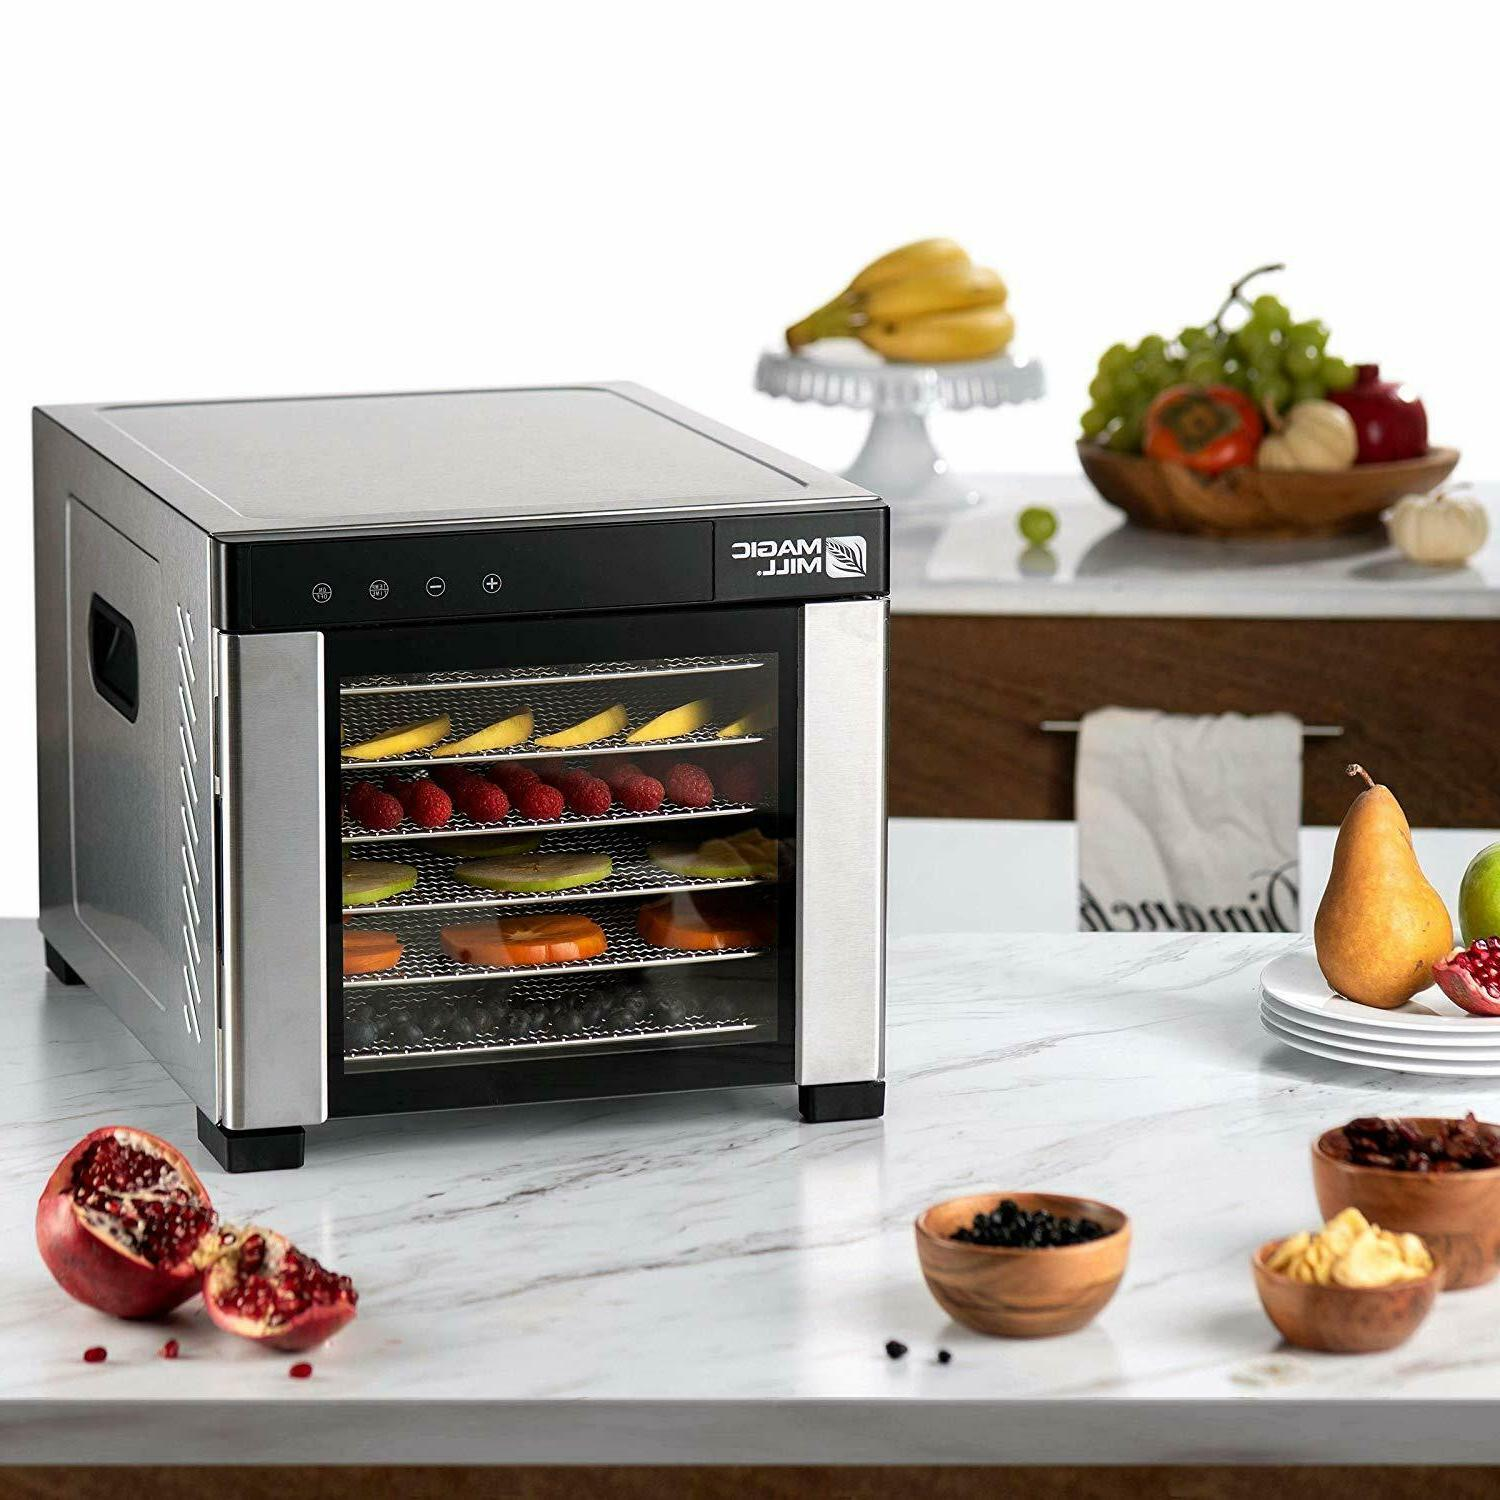 6 Food Dehydrator Timer Stainless Steel Accessories